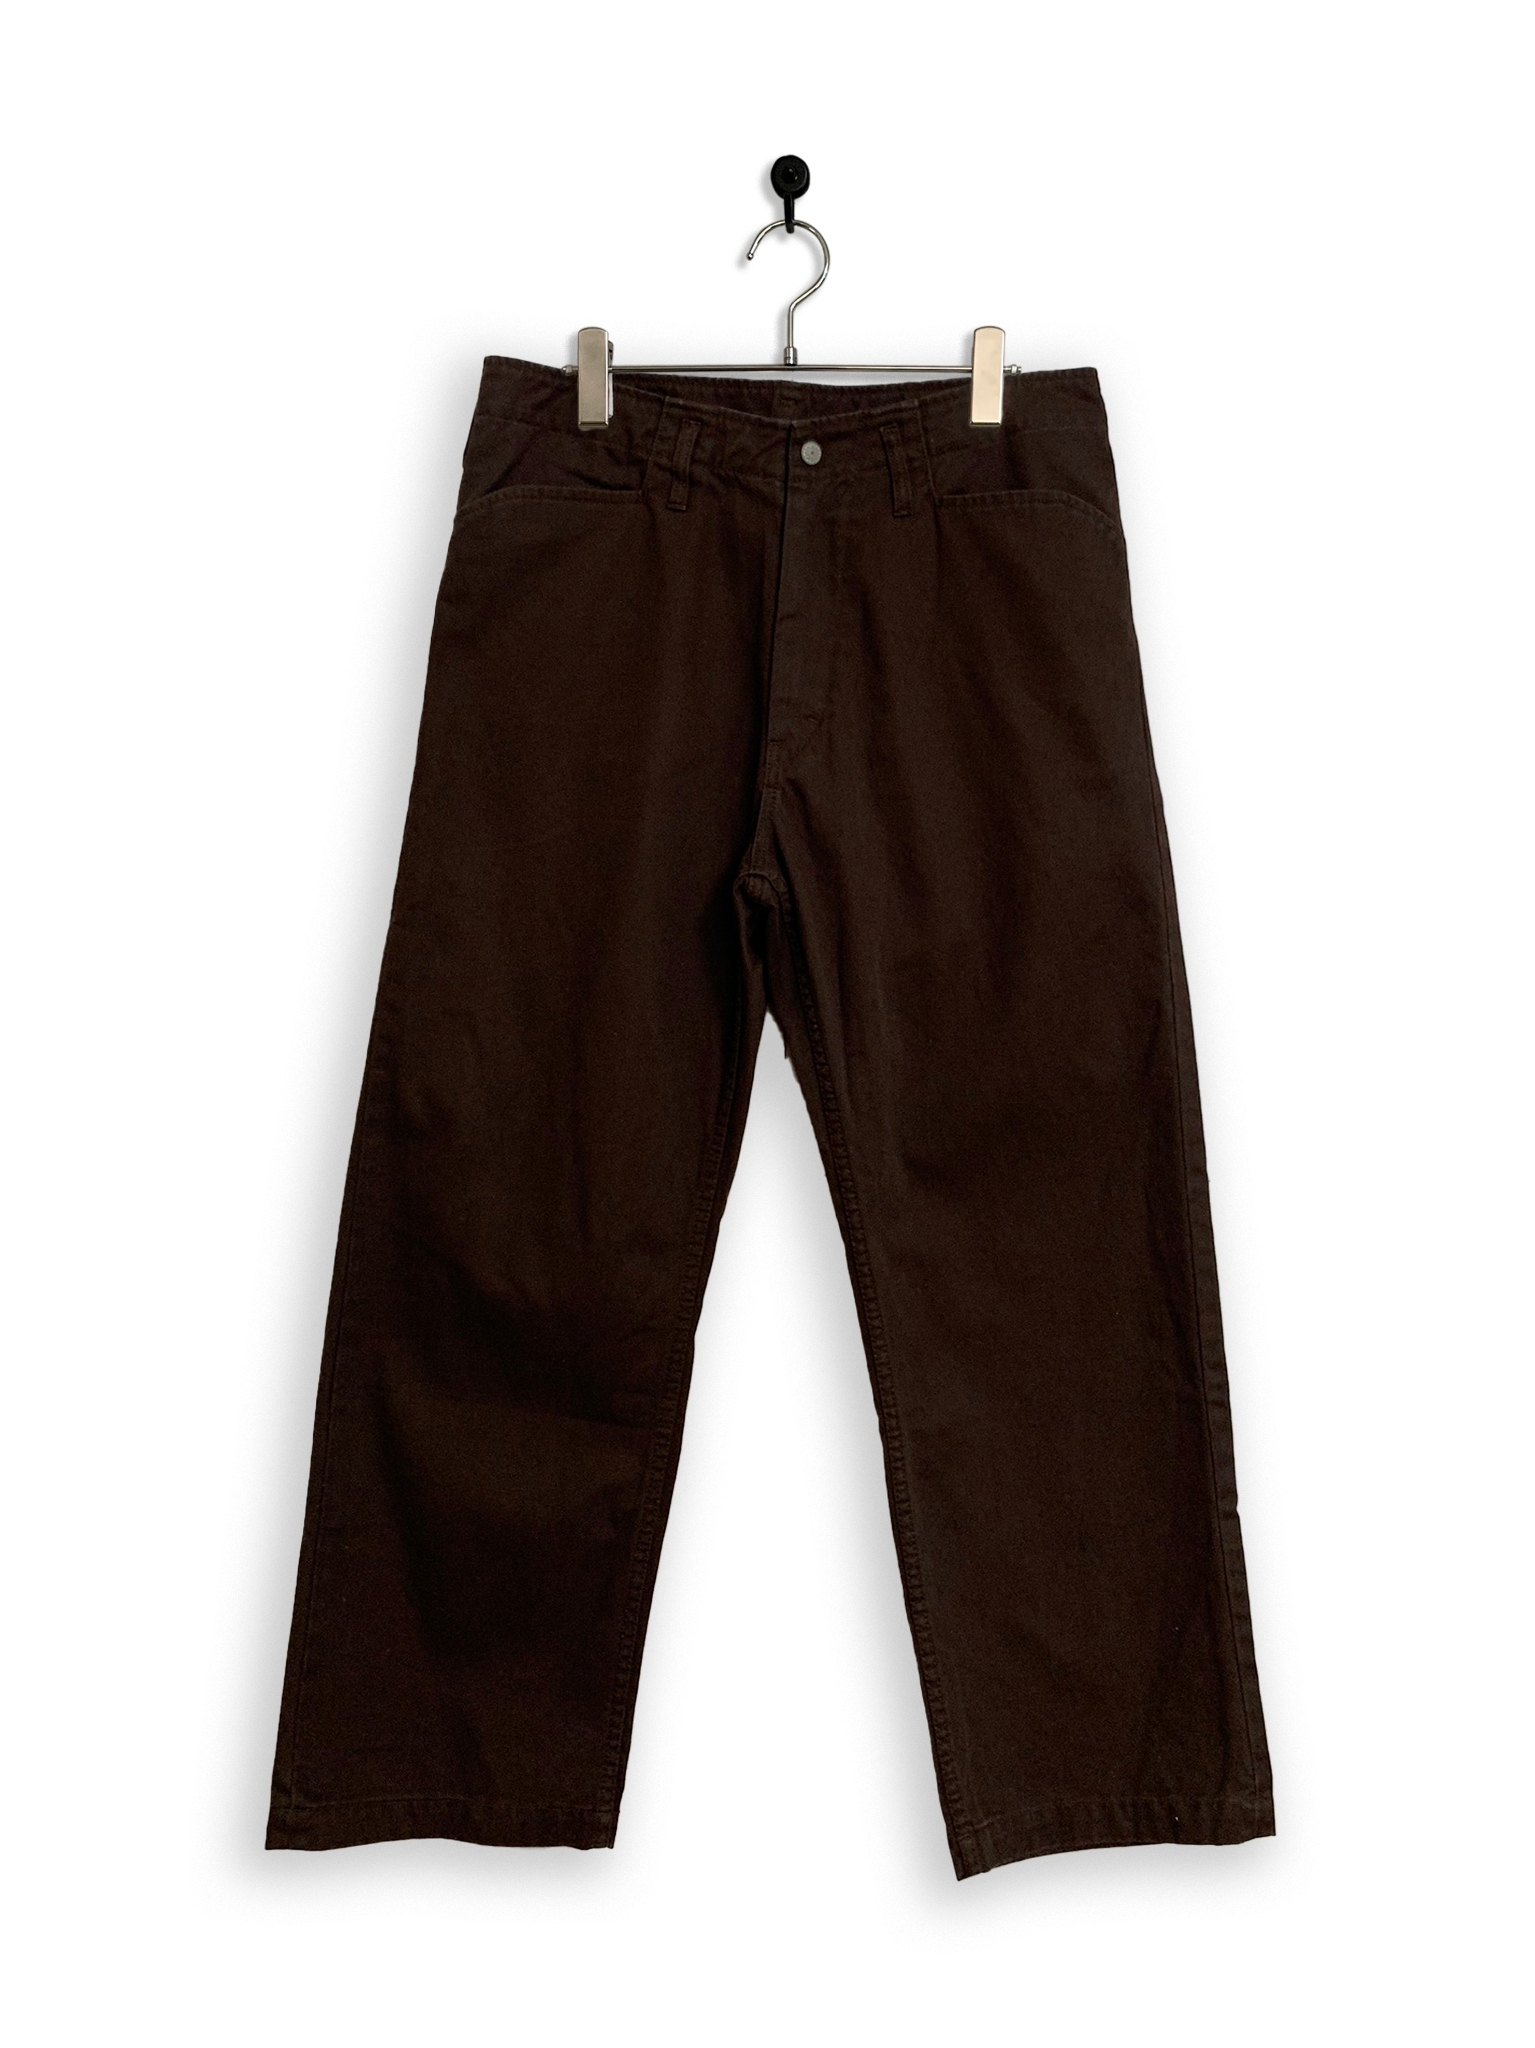 Cotton Twill Frisco Pants/ brown